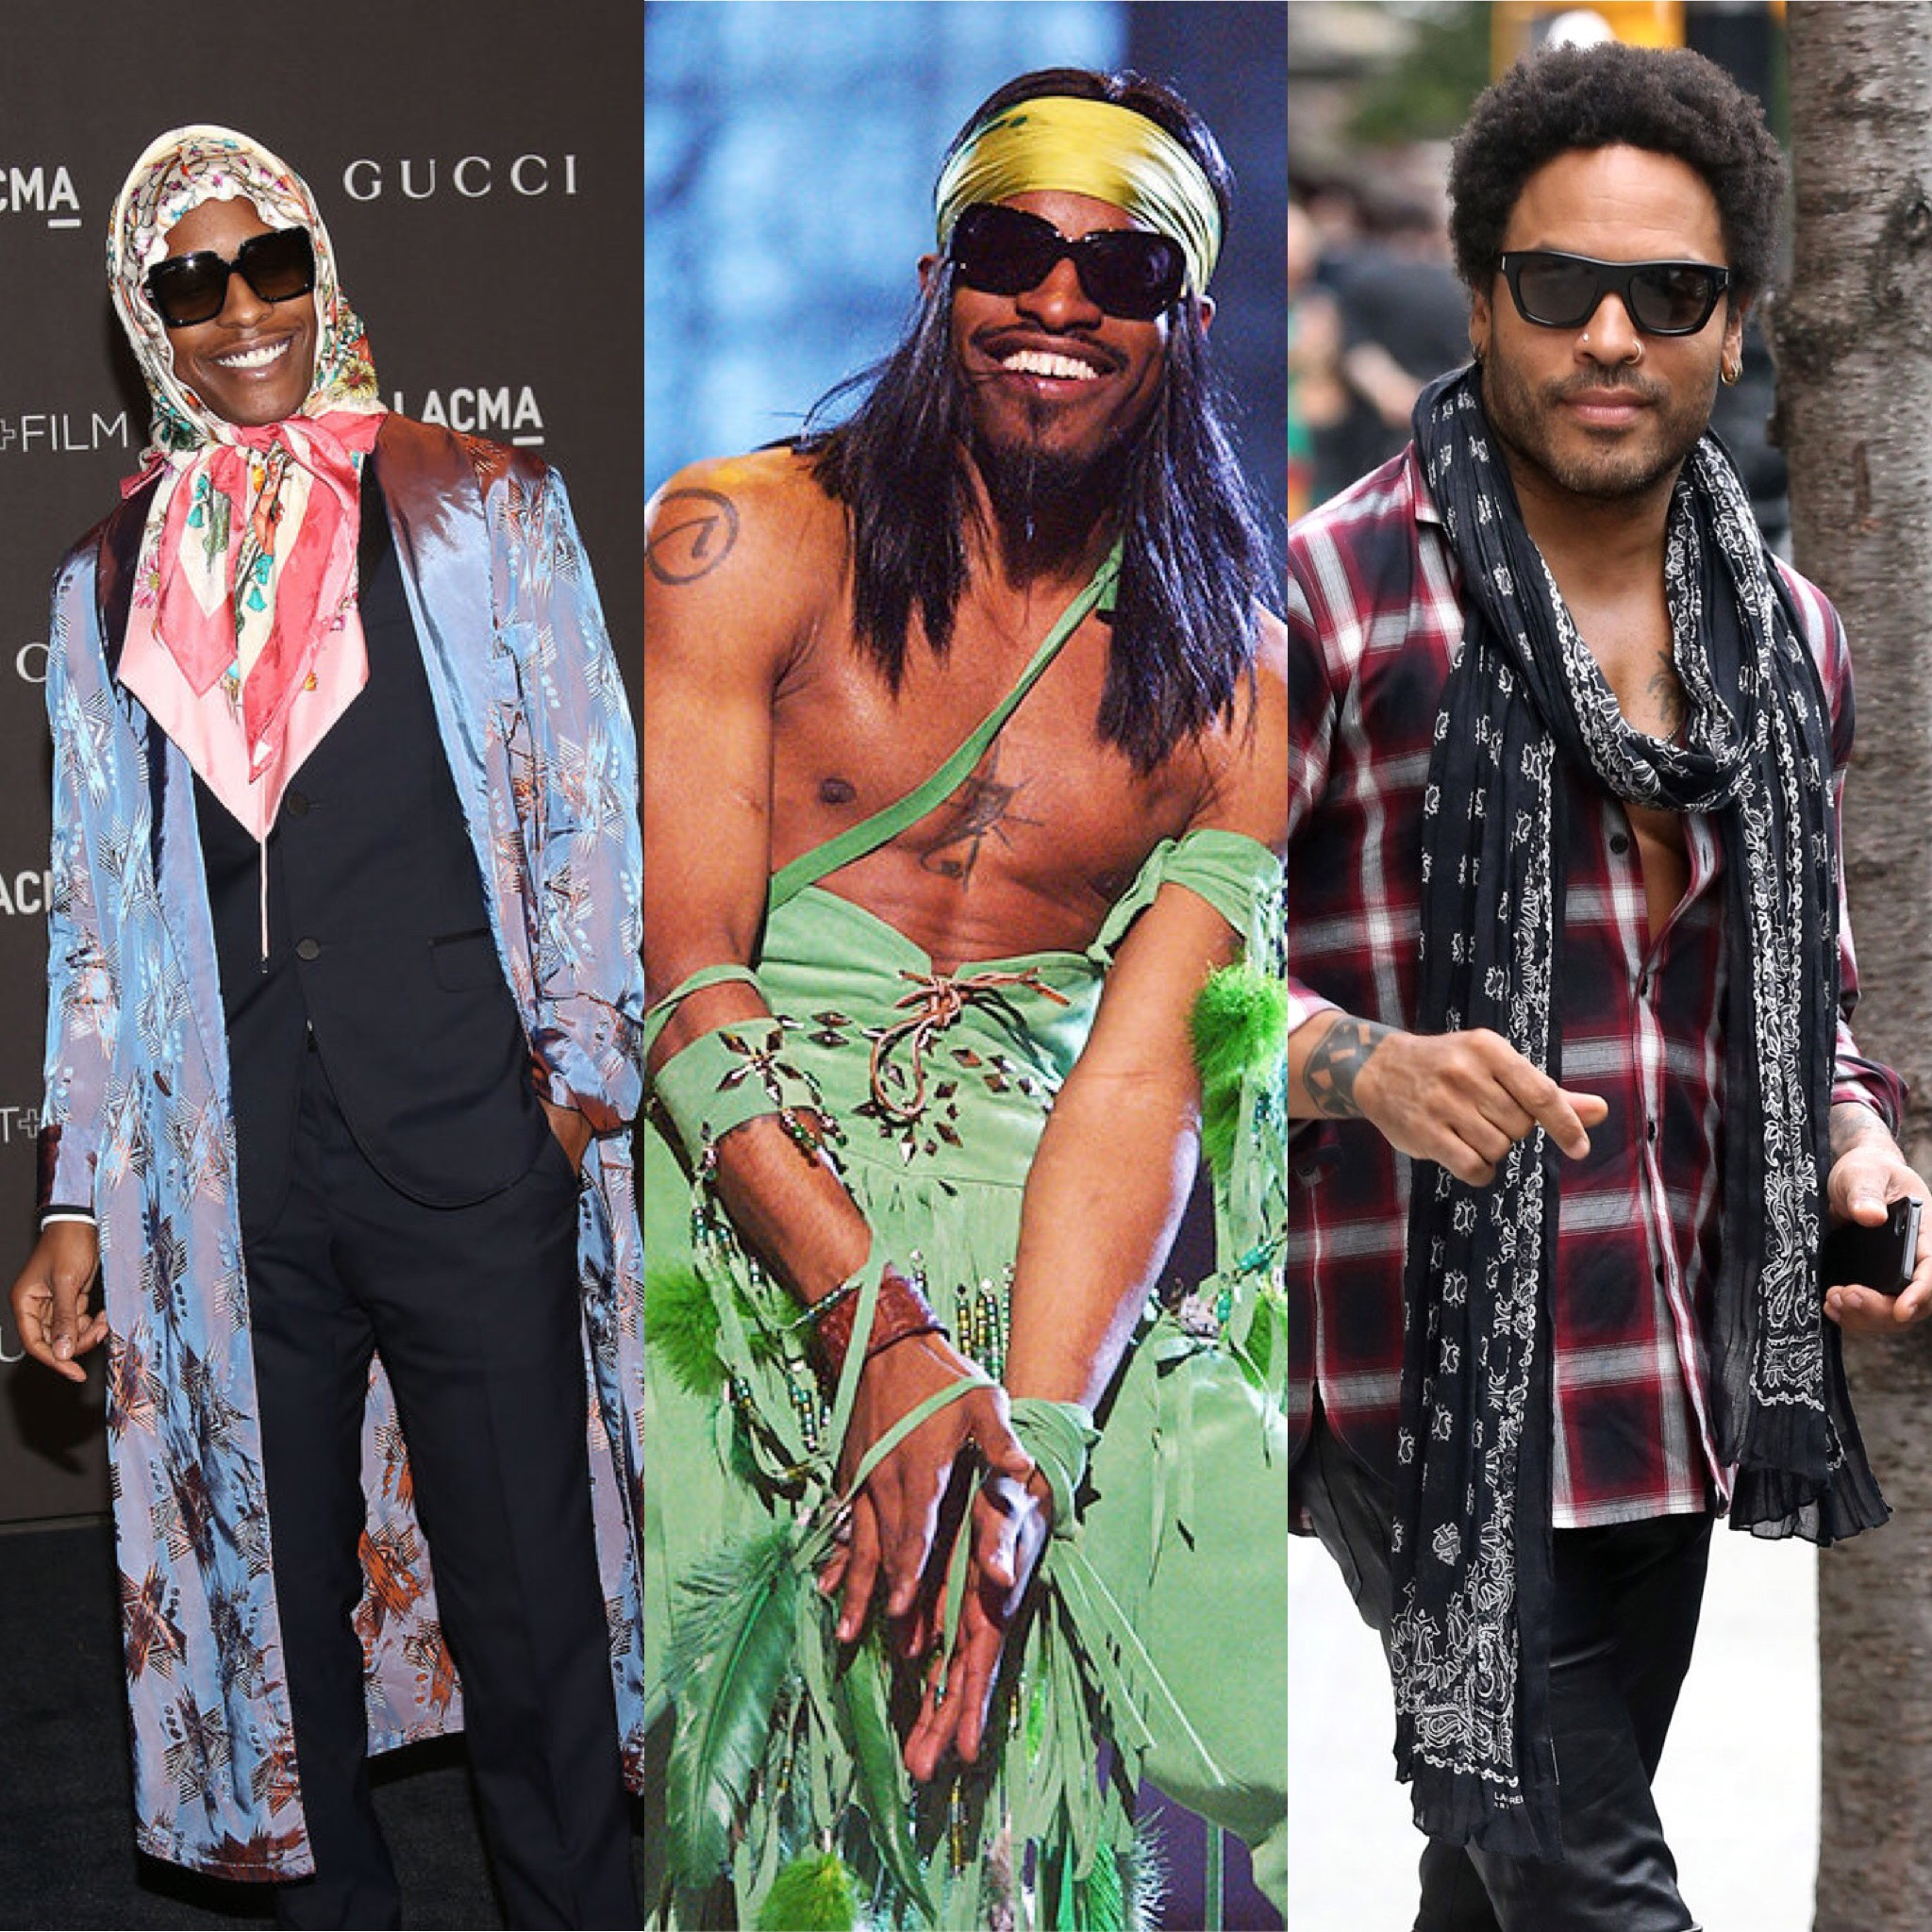 A$AP Rocky  wearing a headscarf at LACMA Art and Film Gala,  Andre 3000  performing at the 2004 Grammys,  Lenny Kravitz  rocking a scarf in New York City